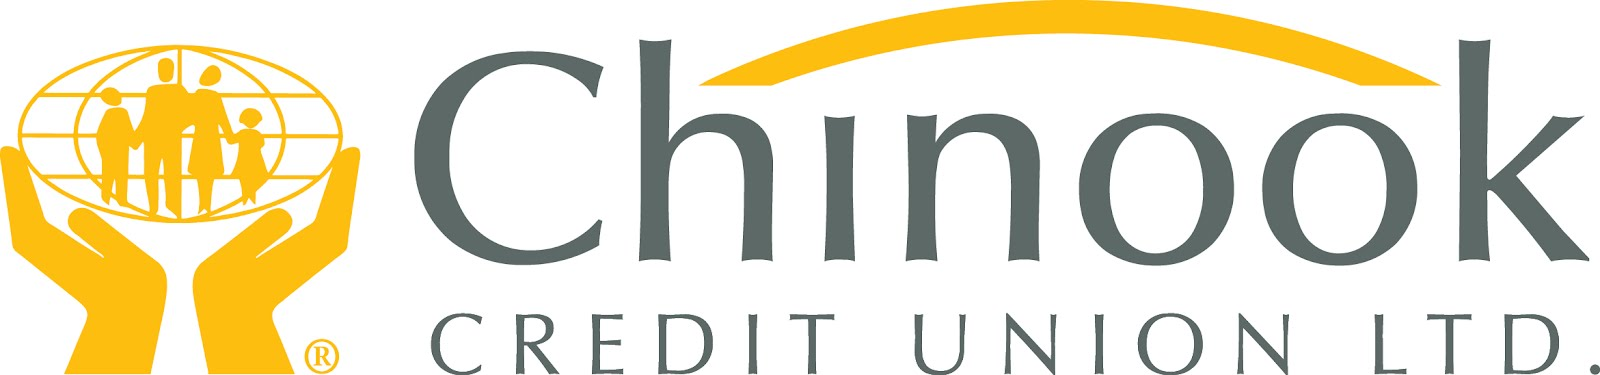 Chinook Credit Union